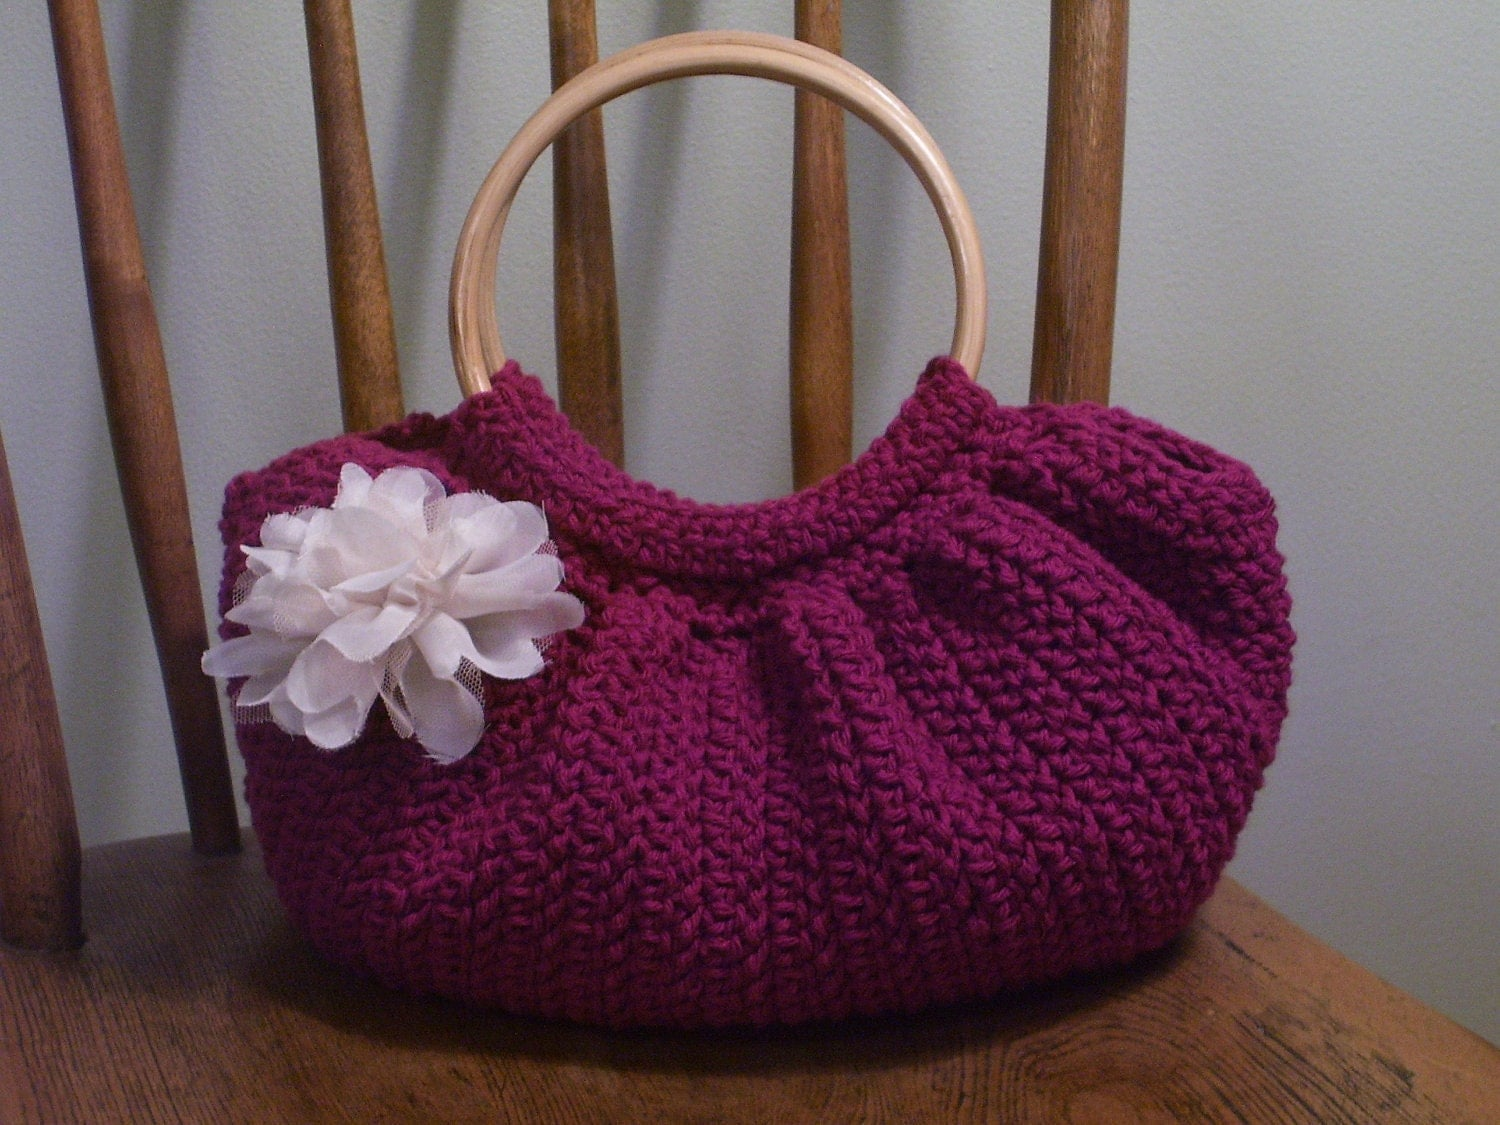 Crochet Bags And Purses Tutorial Crochet Fat Bottom Bag Purse